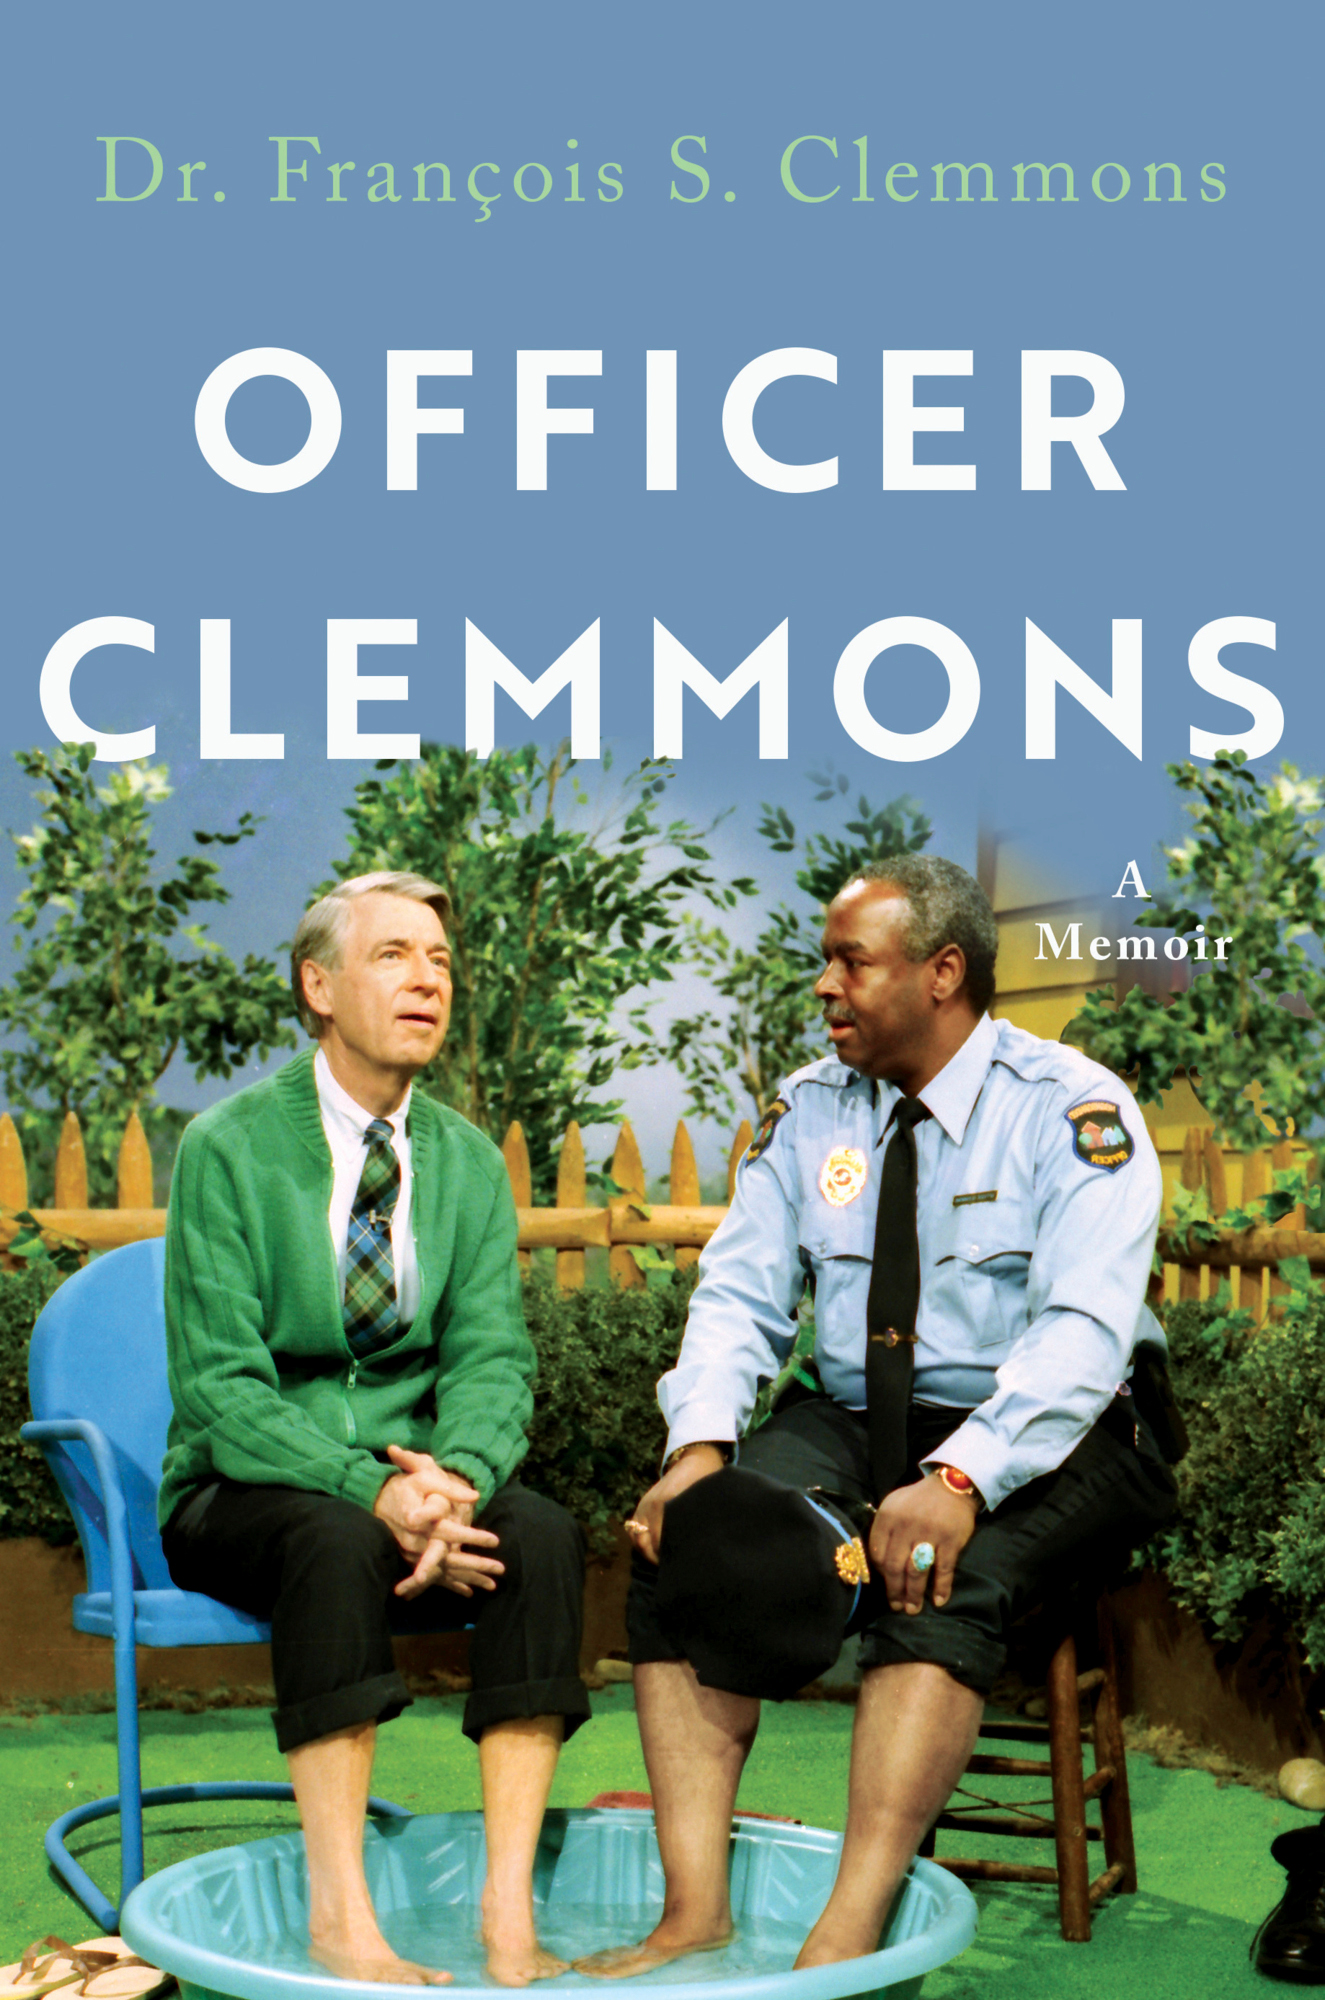 Francois Clemmons' book: Officer Clemmons